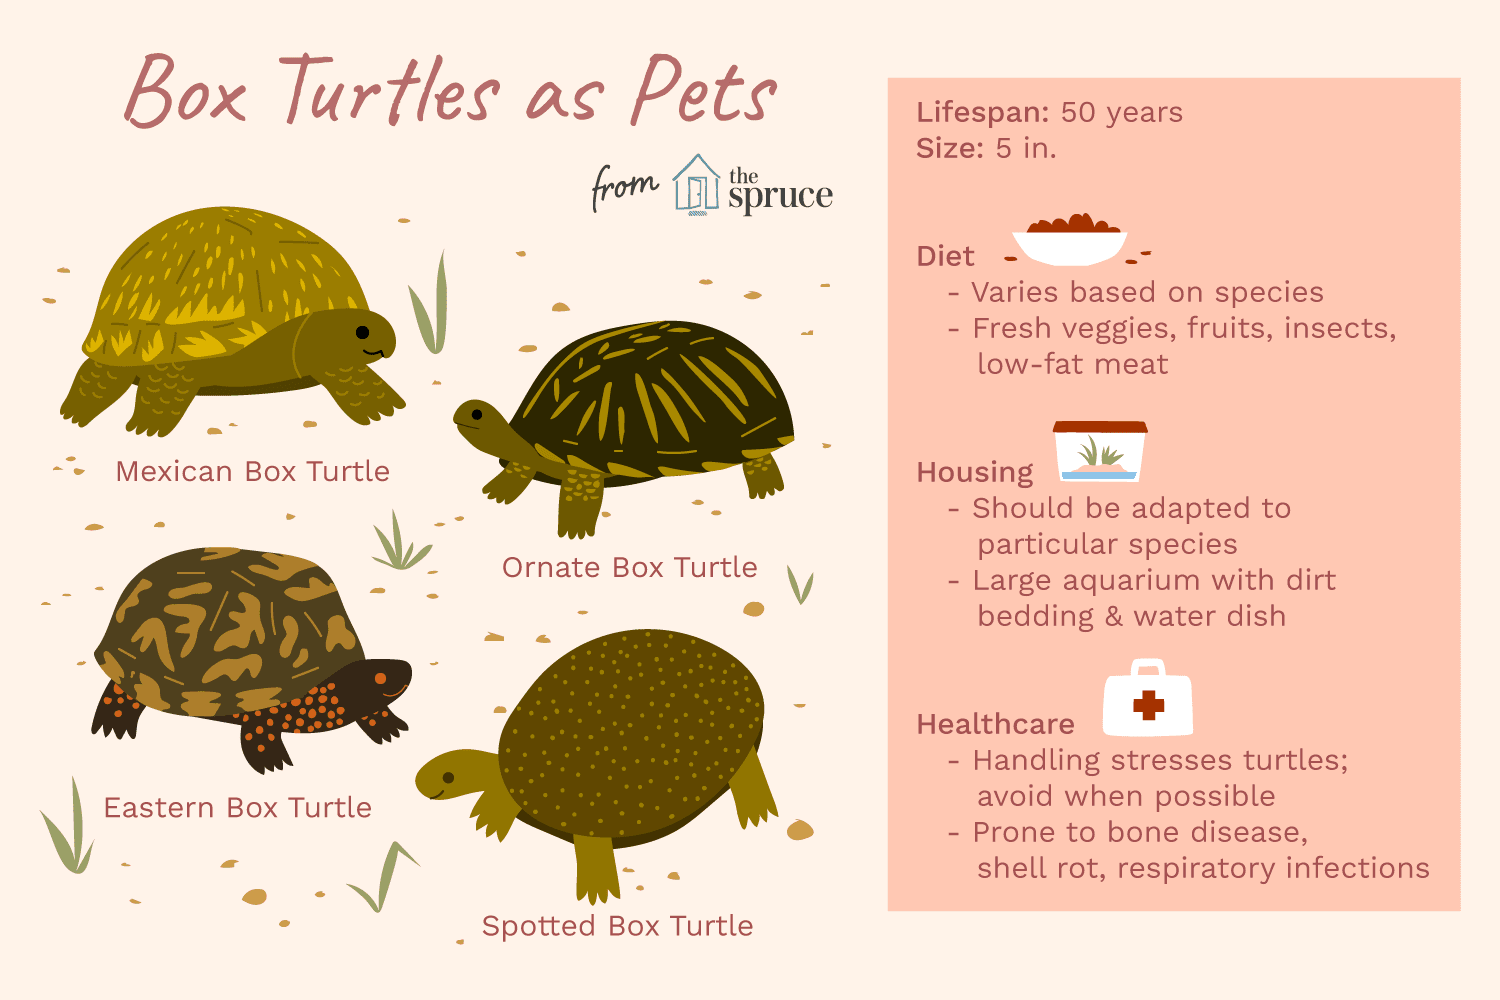 A Guide To Caring For Common Box Turtles As Pets